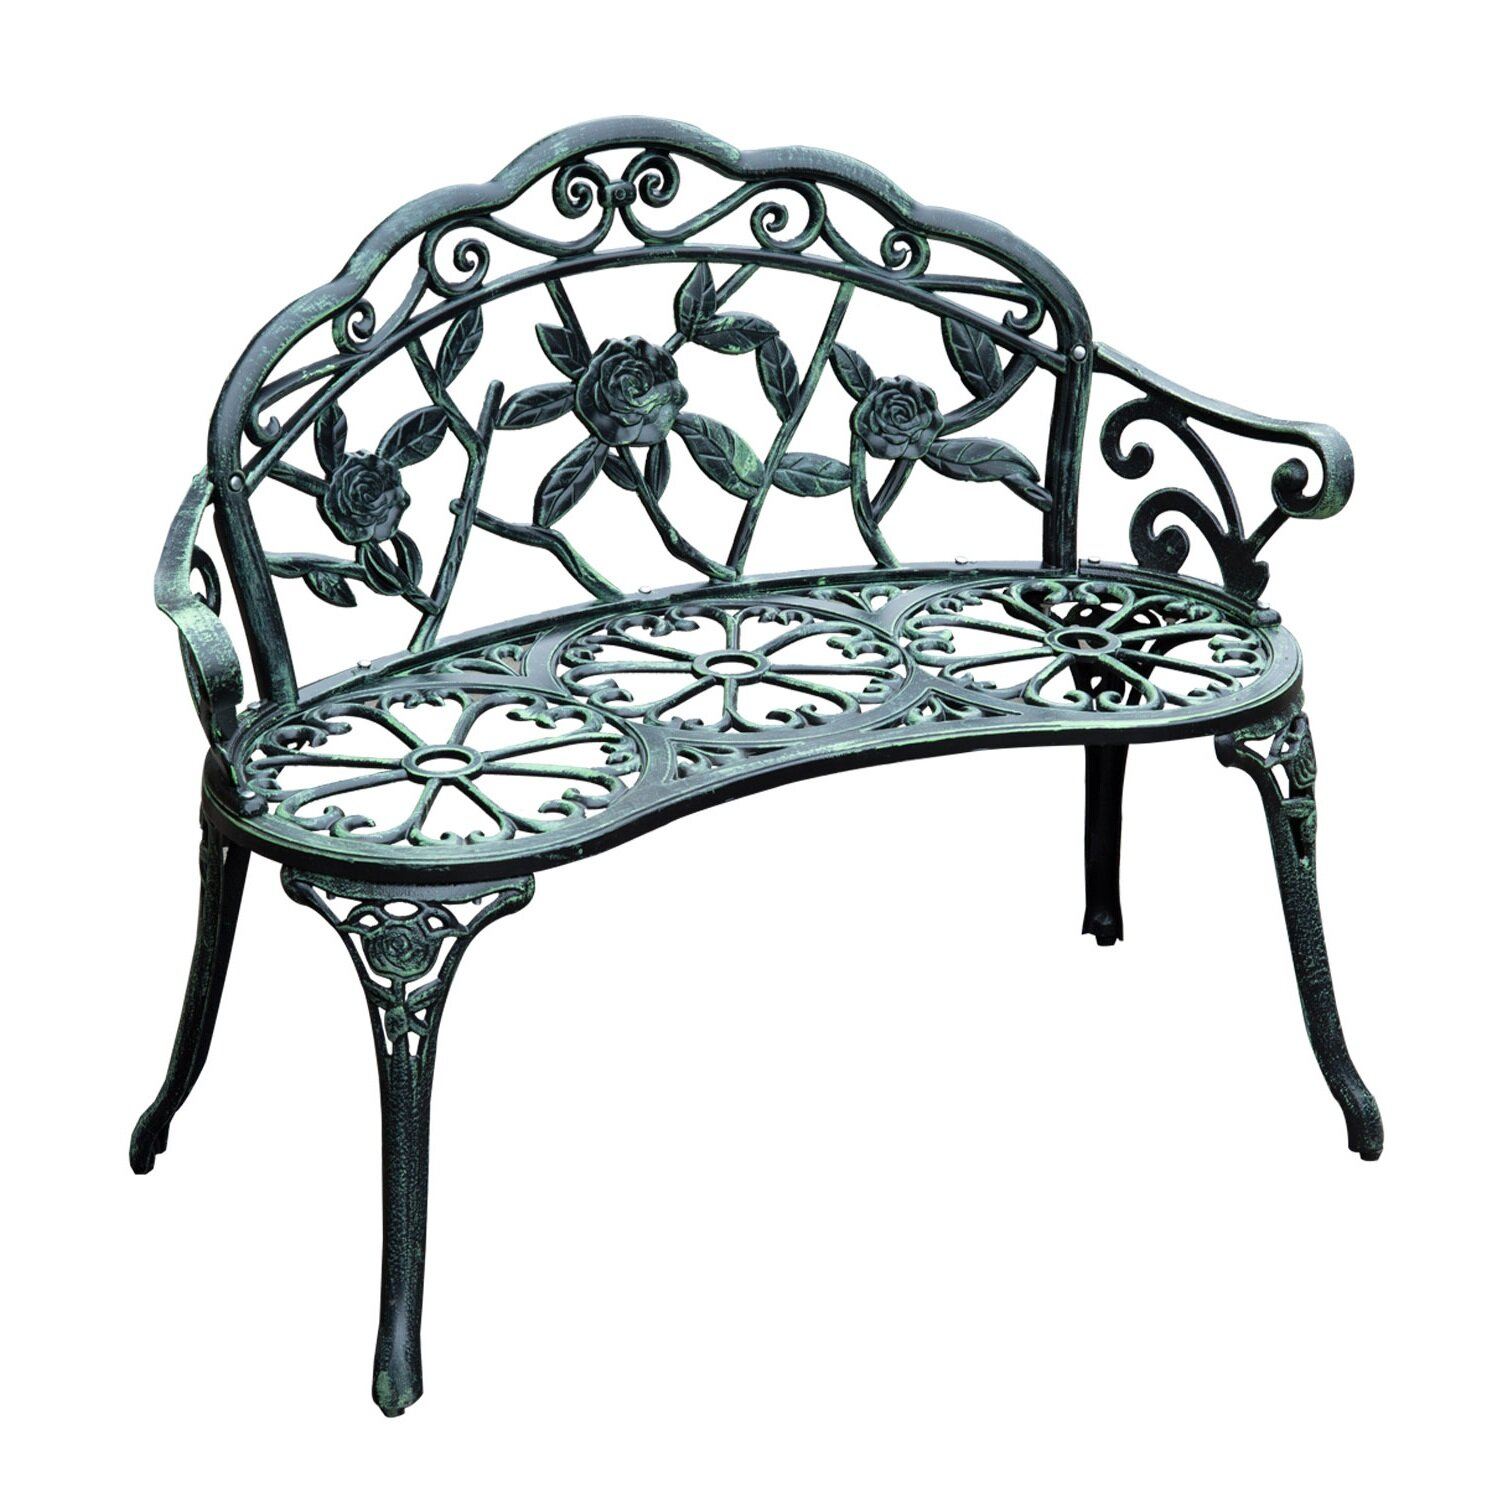 Cast Iron Antique Outdoor Patio Garden Bench Wayfair